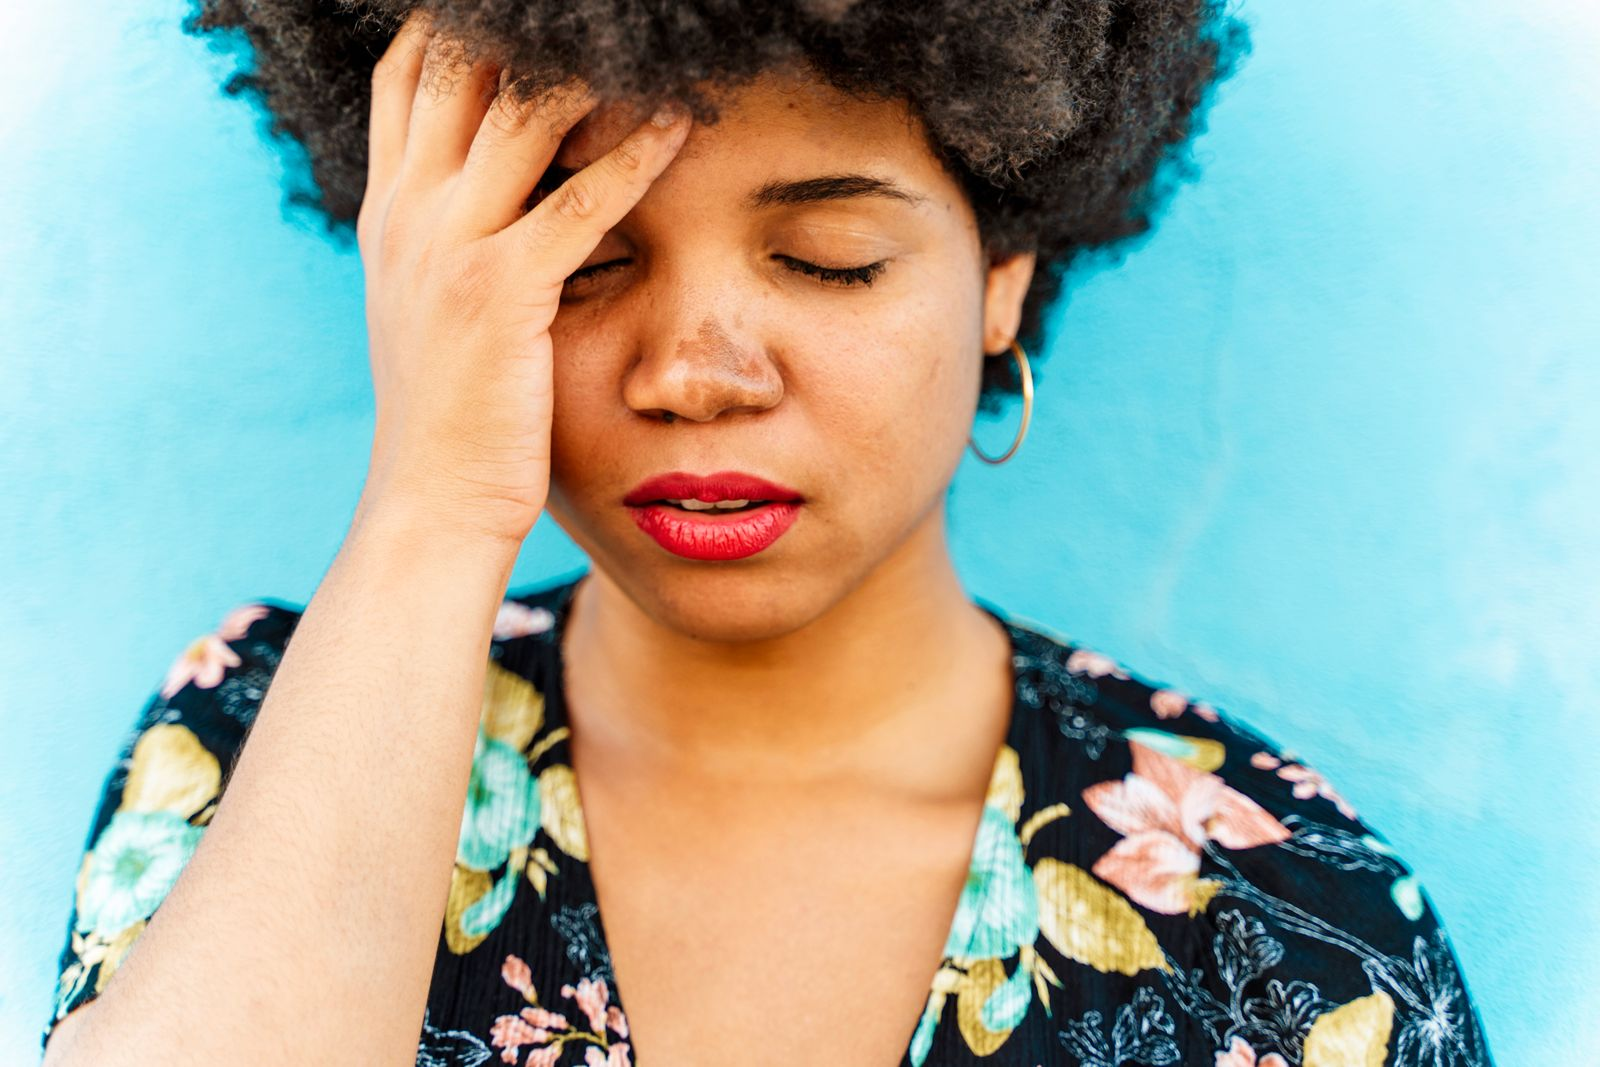 Portrait of Afro-American woman, hand on forehead, blue wall in the background model released Symbolfoto PUBLICATIONxINx